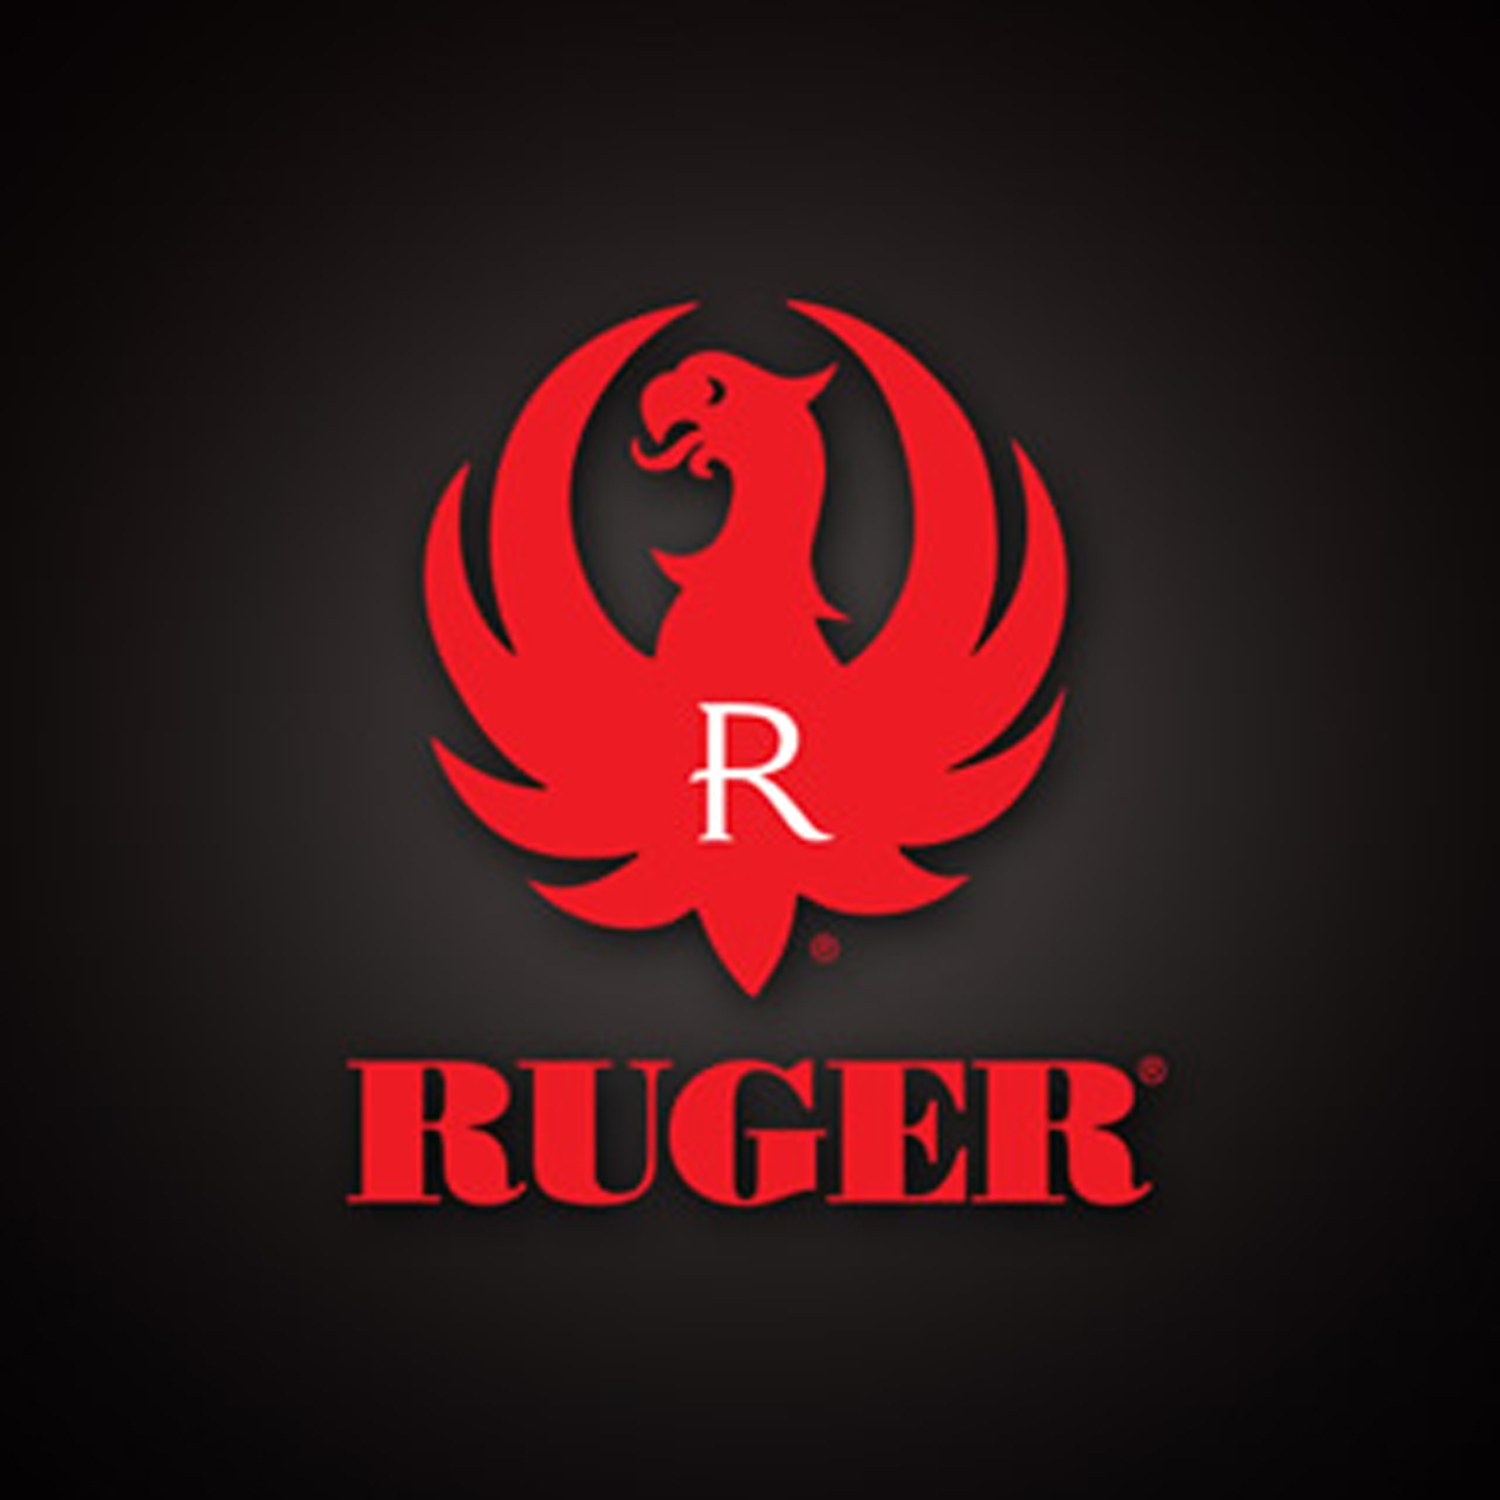 Ruger Soars in 3rd Quarter YouViewedEditorial 1500x1500